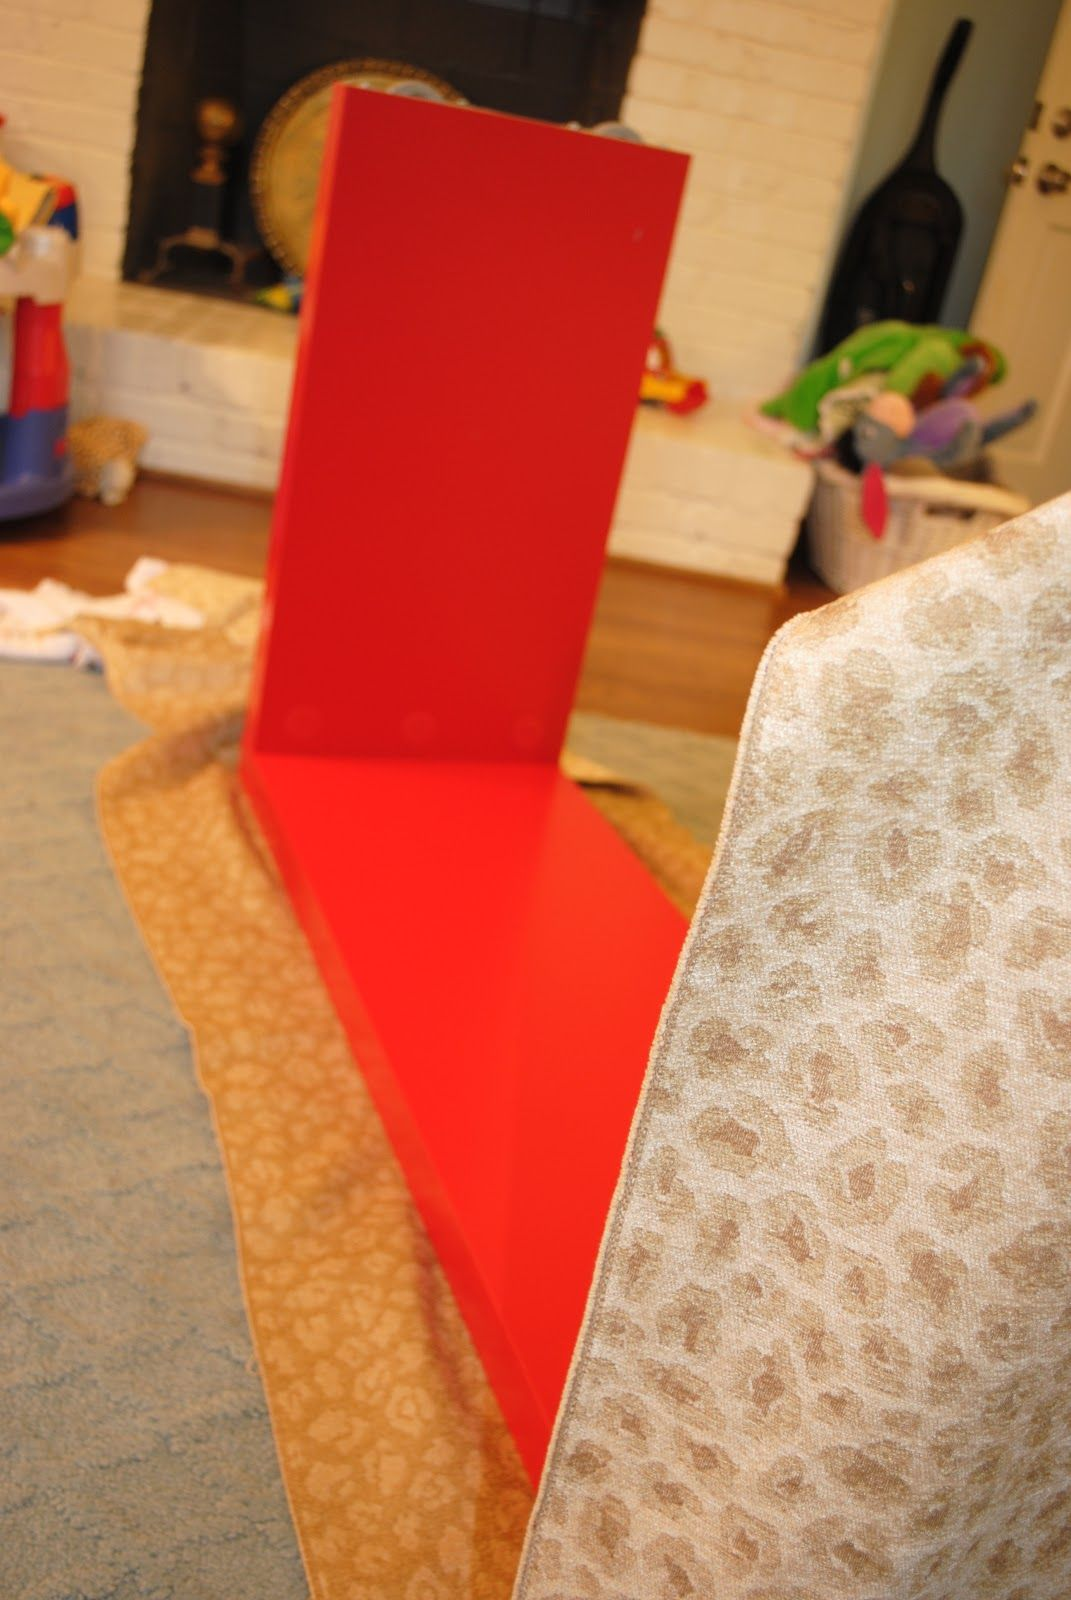 The Red Ikea Malm Console Table I Bought A Few Years Ago Has Been Sitting In